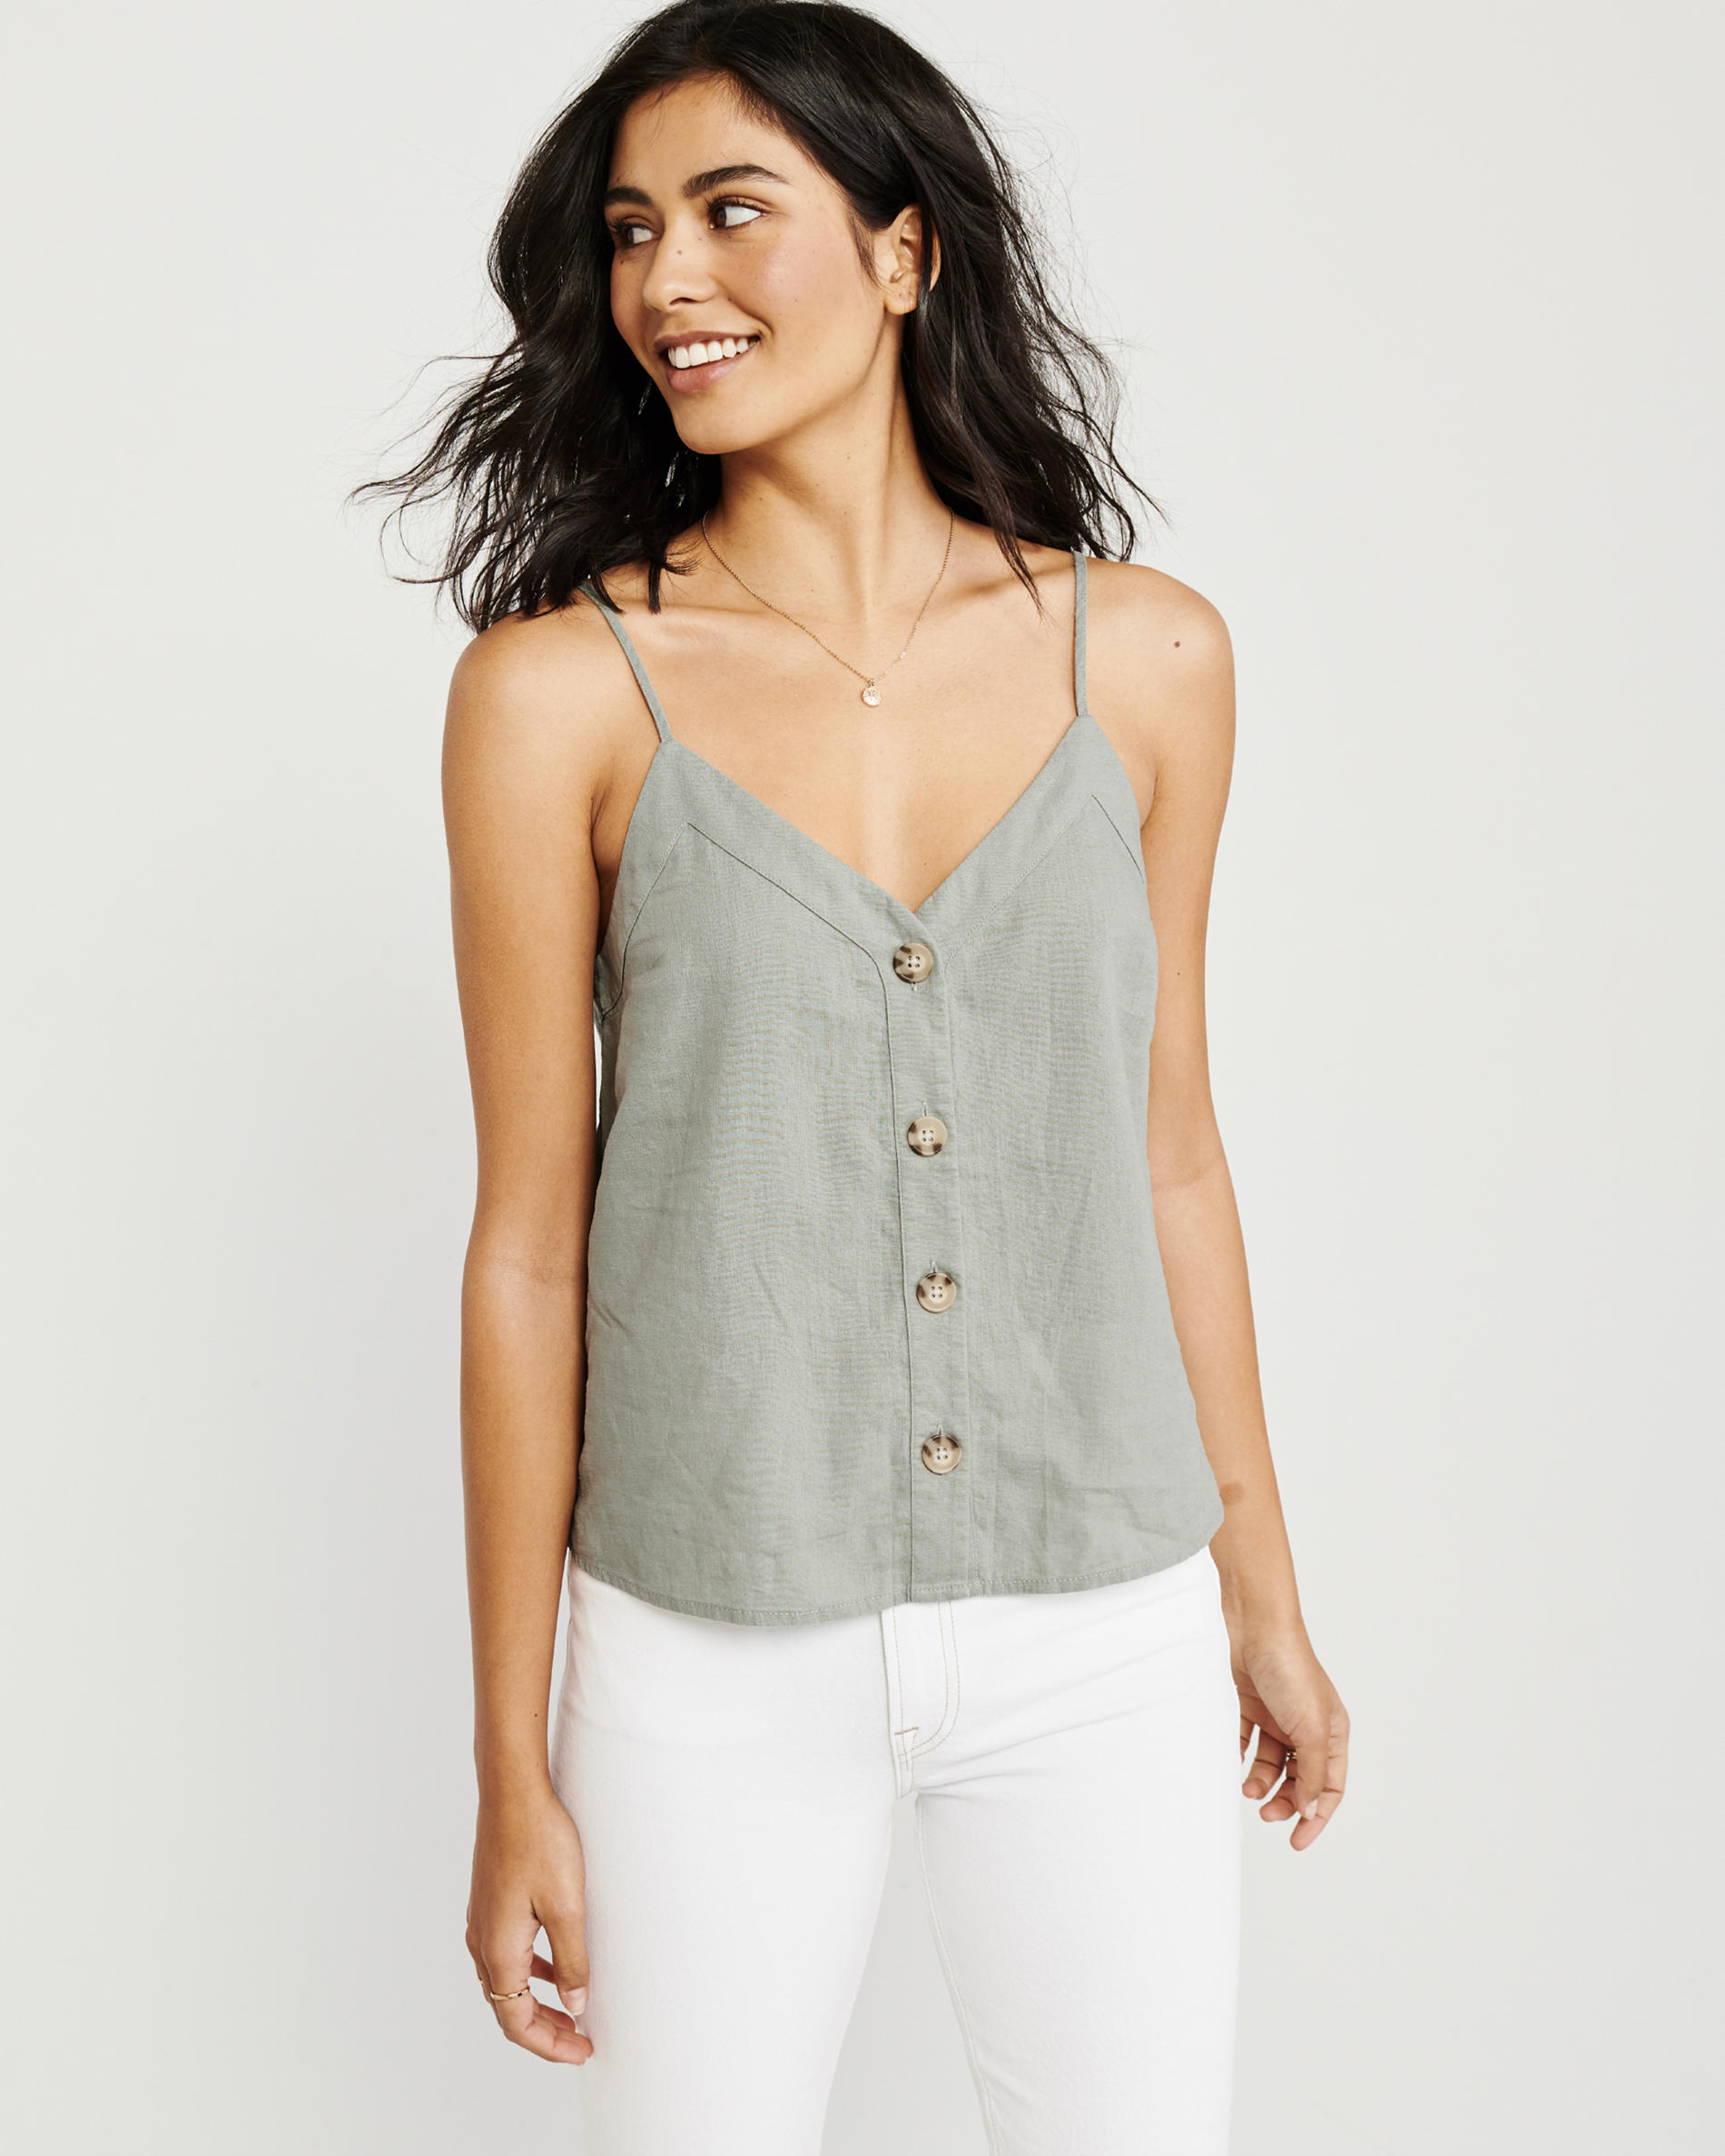 olive button front cami.jpg